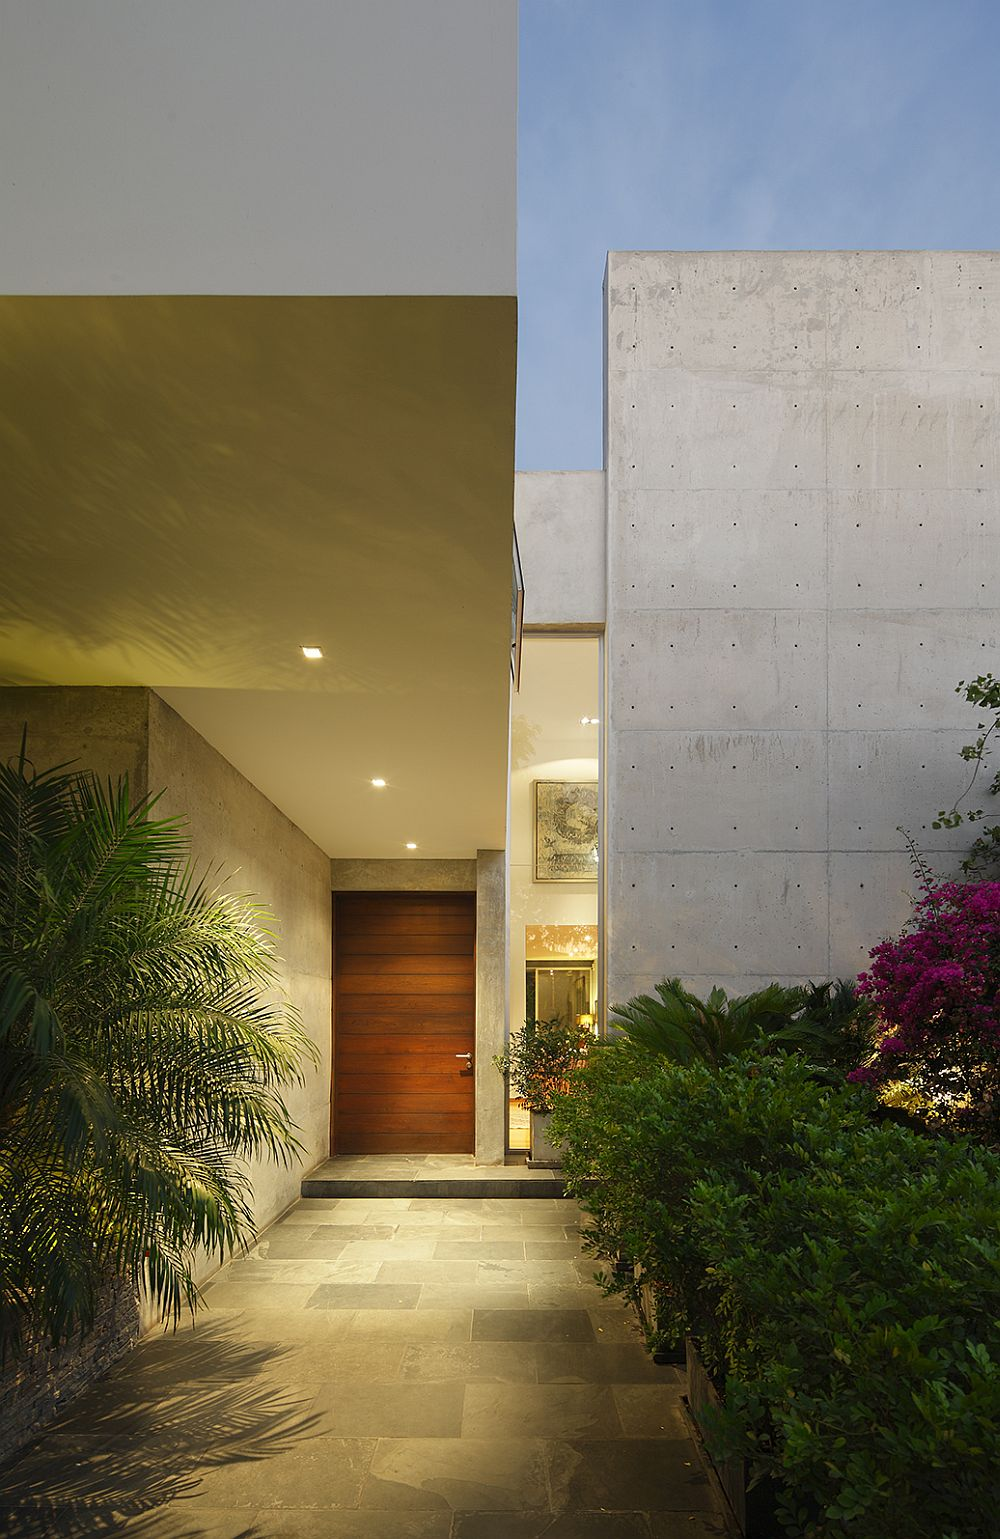 View of the entry of House M in Lima, Peru